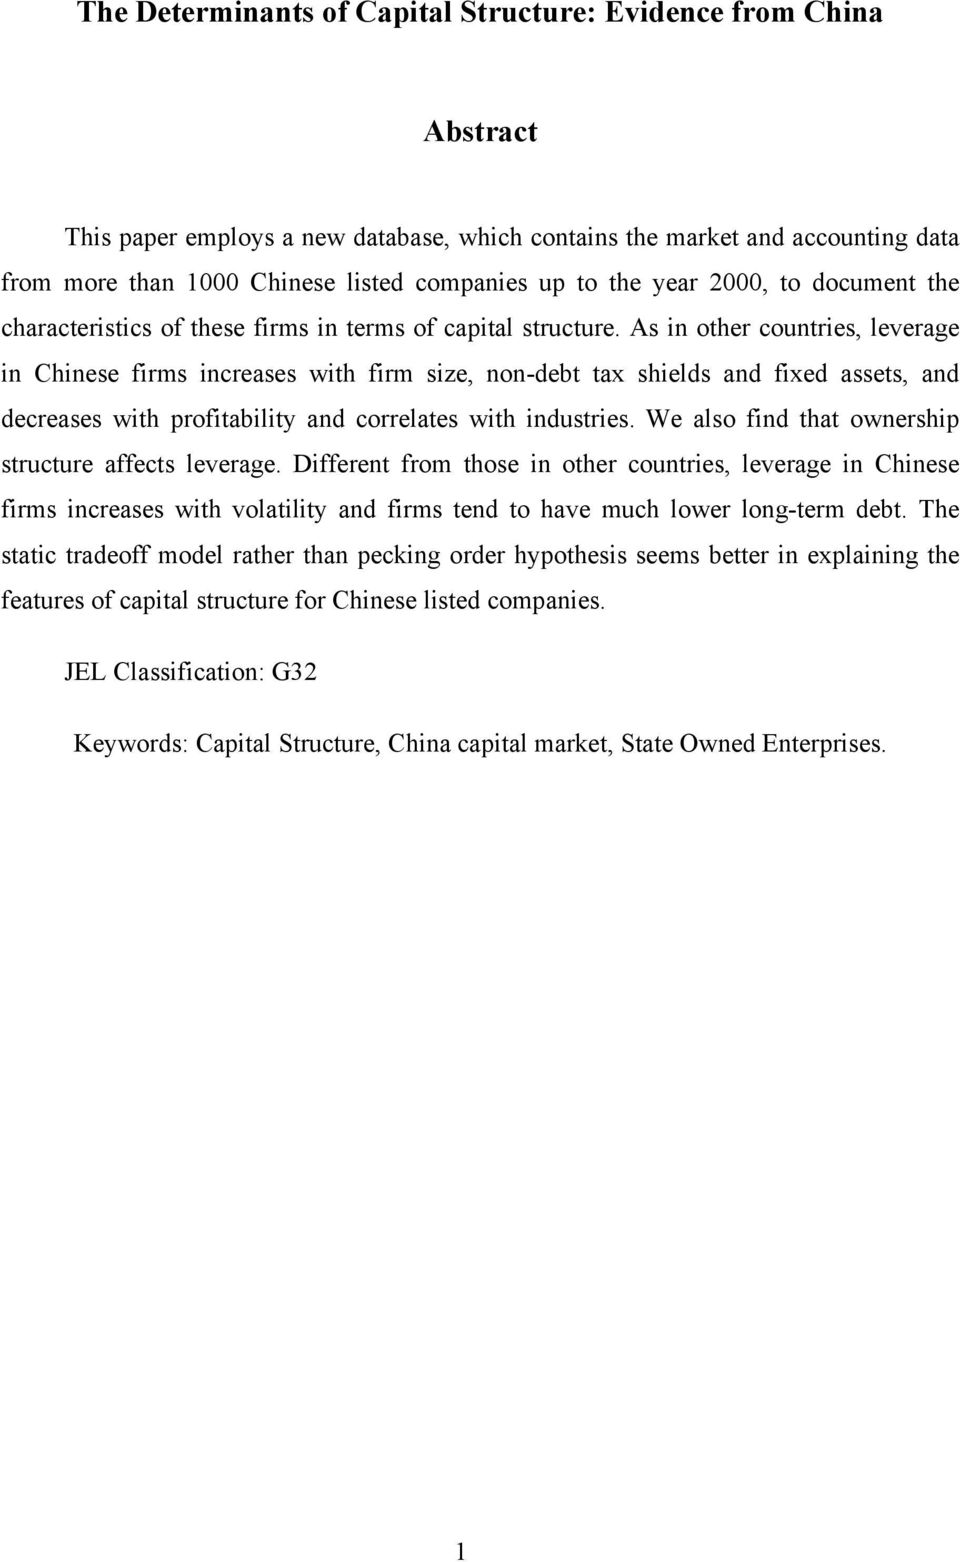 As in other countries, leverage in Chinese firms increases with firm size, non-debt tax shields and fixed assets, and decreases with profitability and correlates with industries.